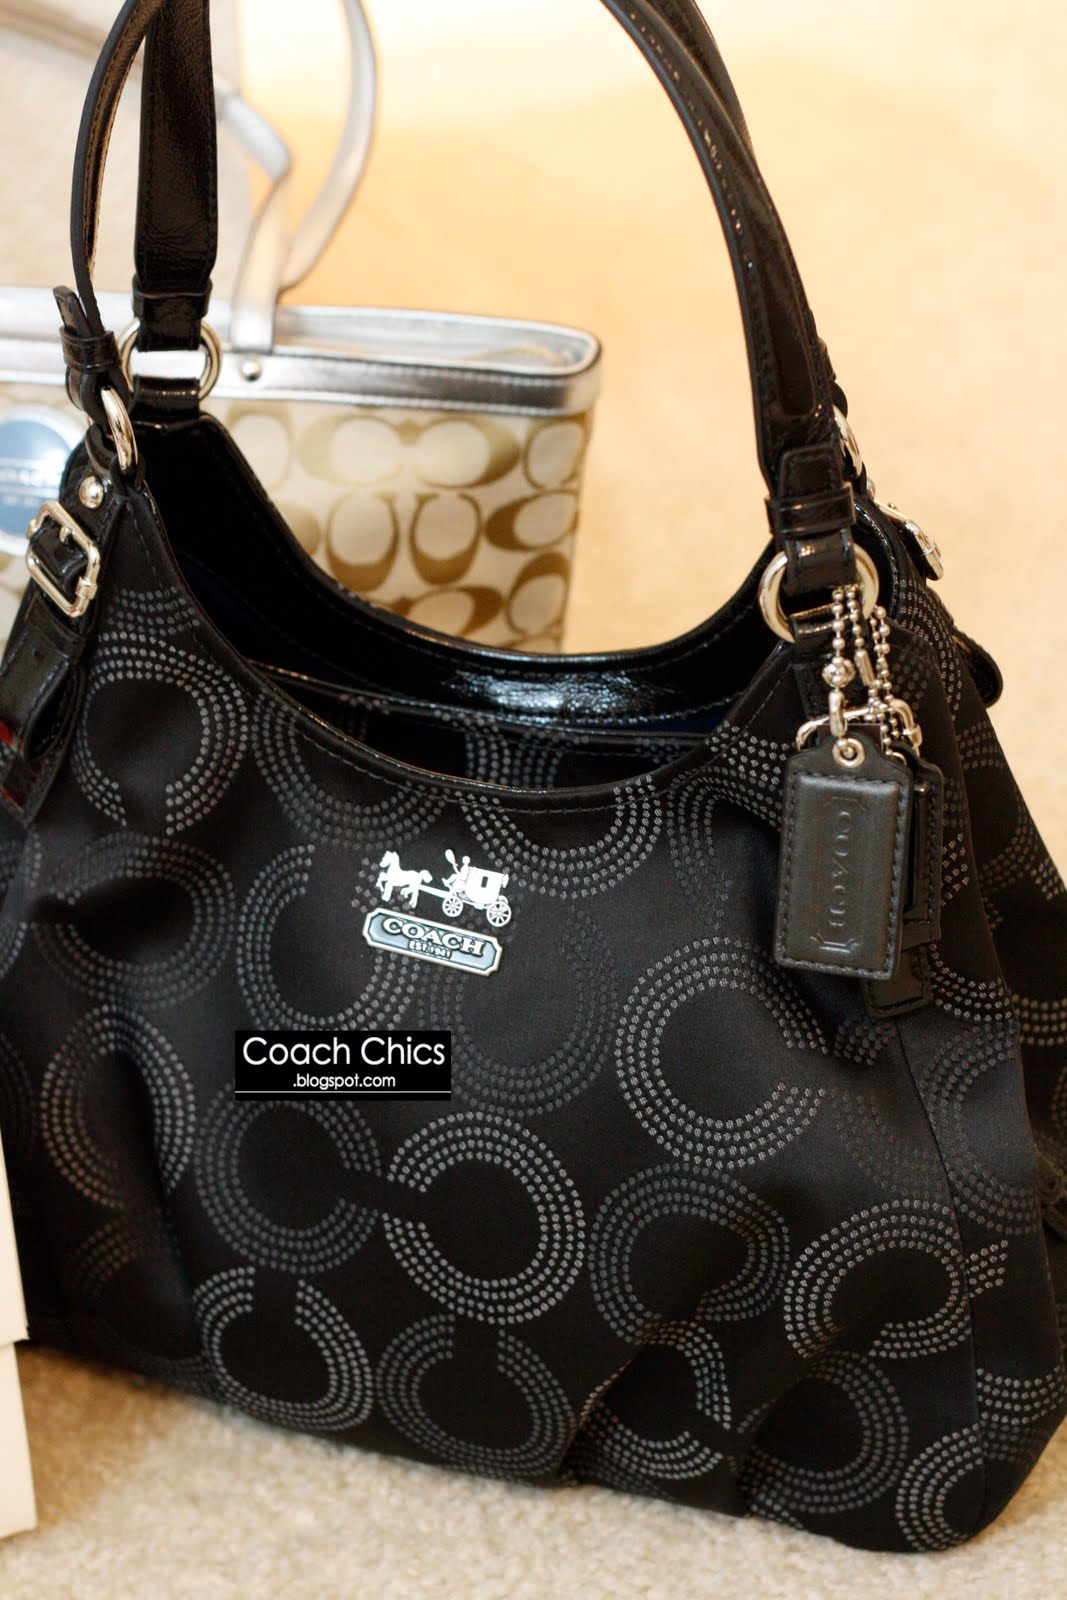 481c05045c8b best price coach canvas op art hobo bag c7a50 13ea6  low price mothers day  special rm780 limited units color silver.black style 16505. coach